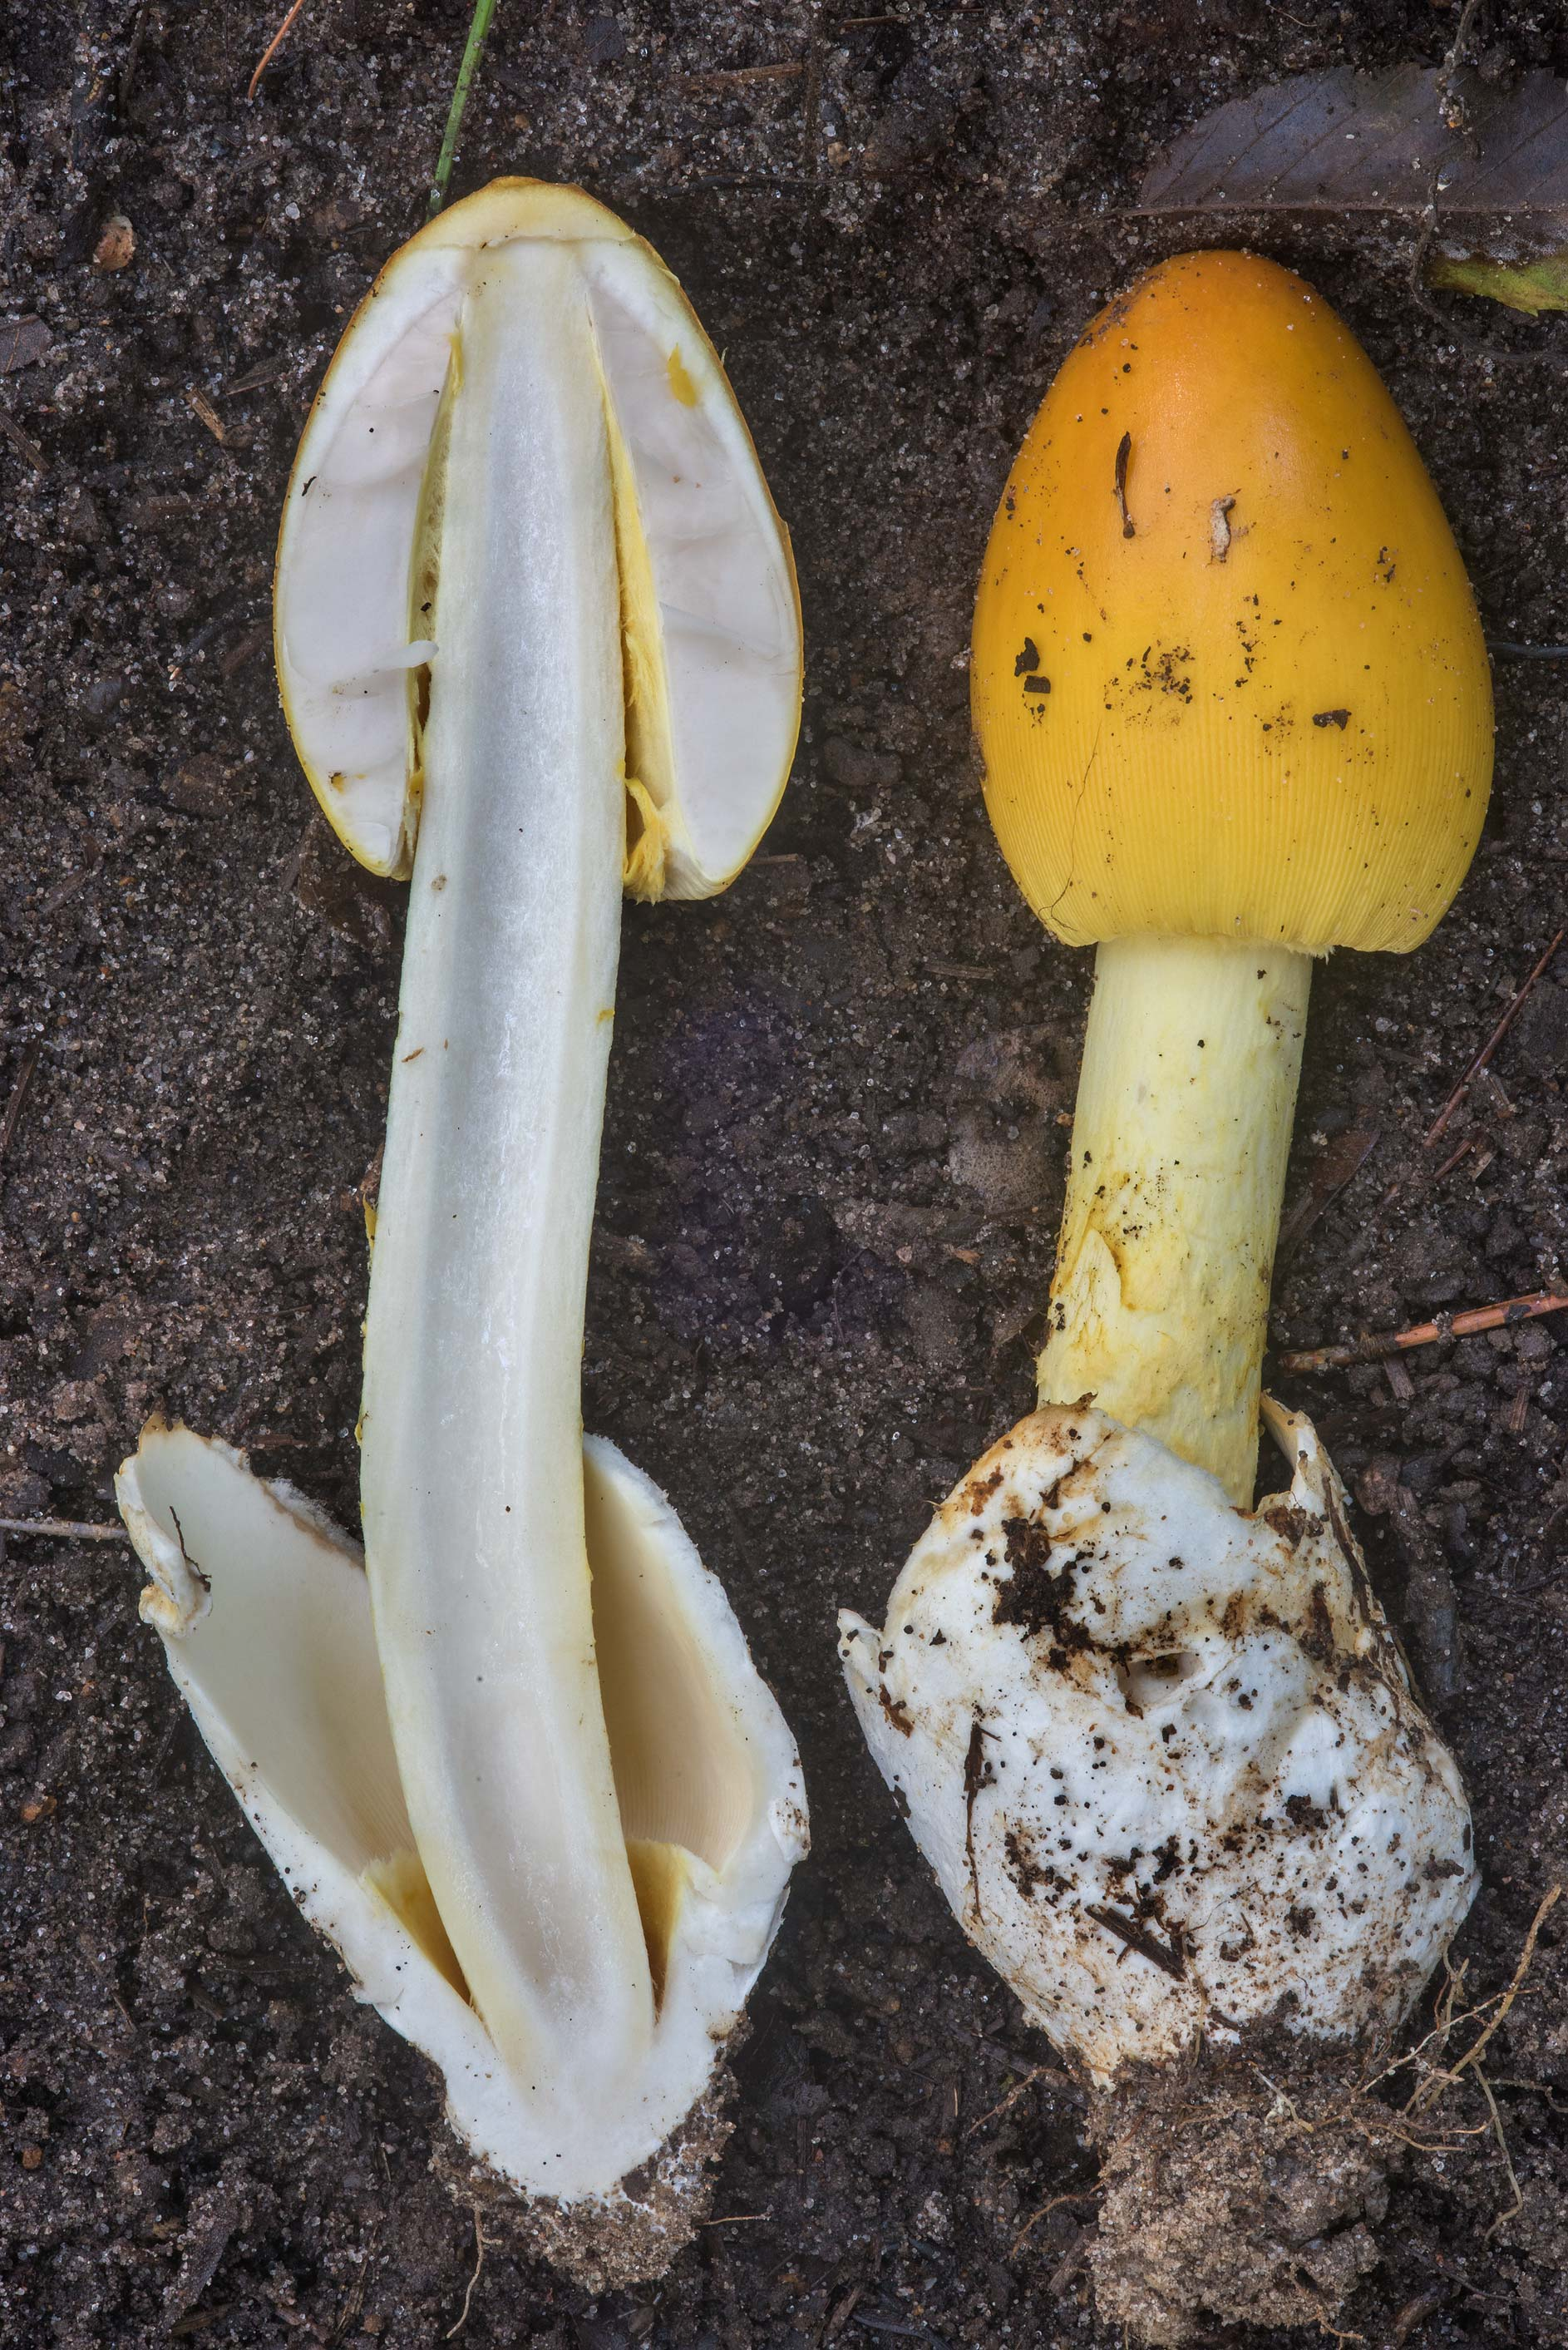 Dissected Amanita sect. Caesareae mushroom on...National Forest near Huntsville, Texas